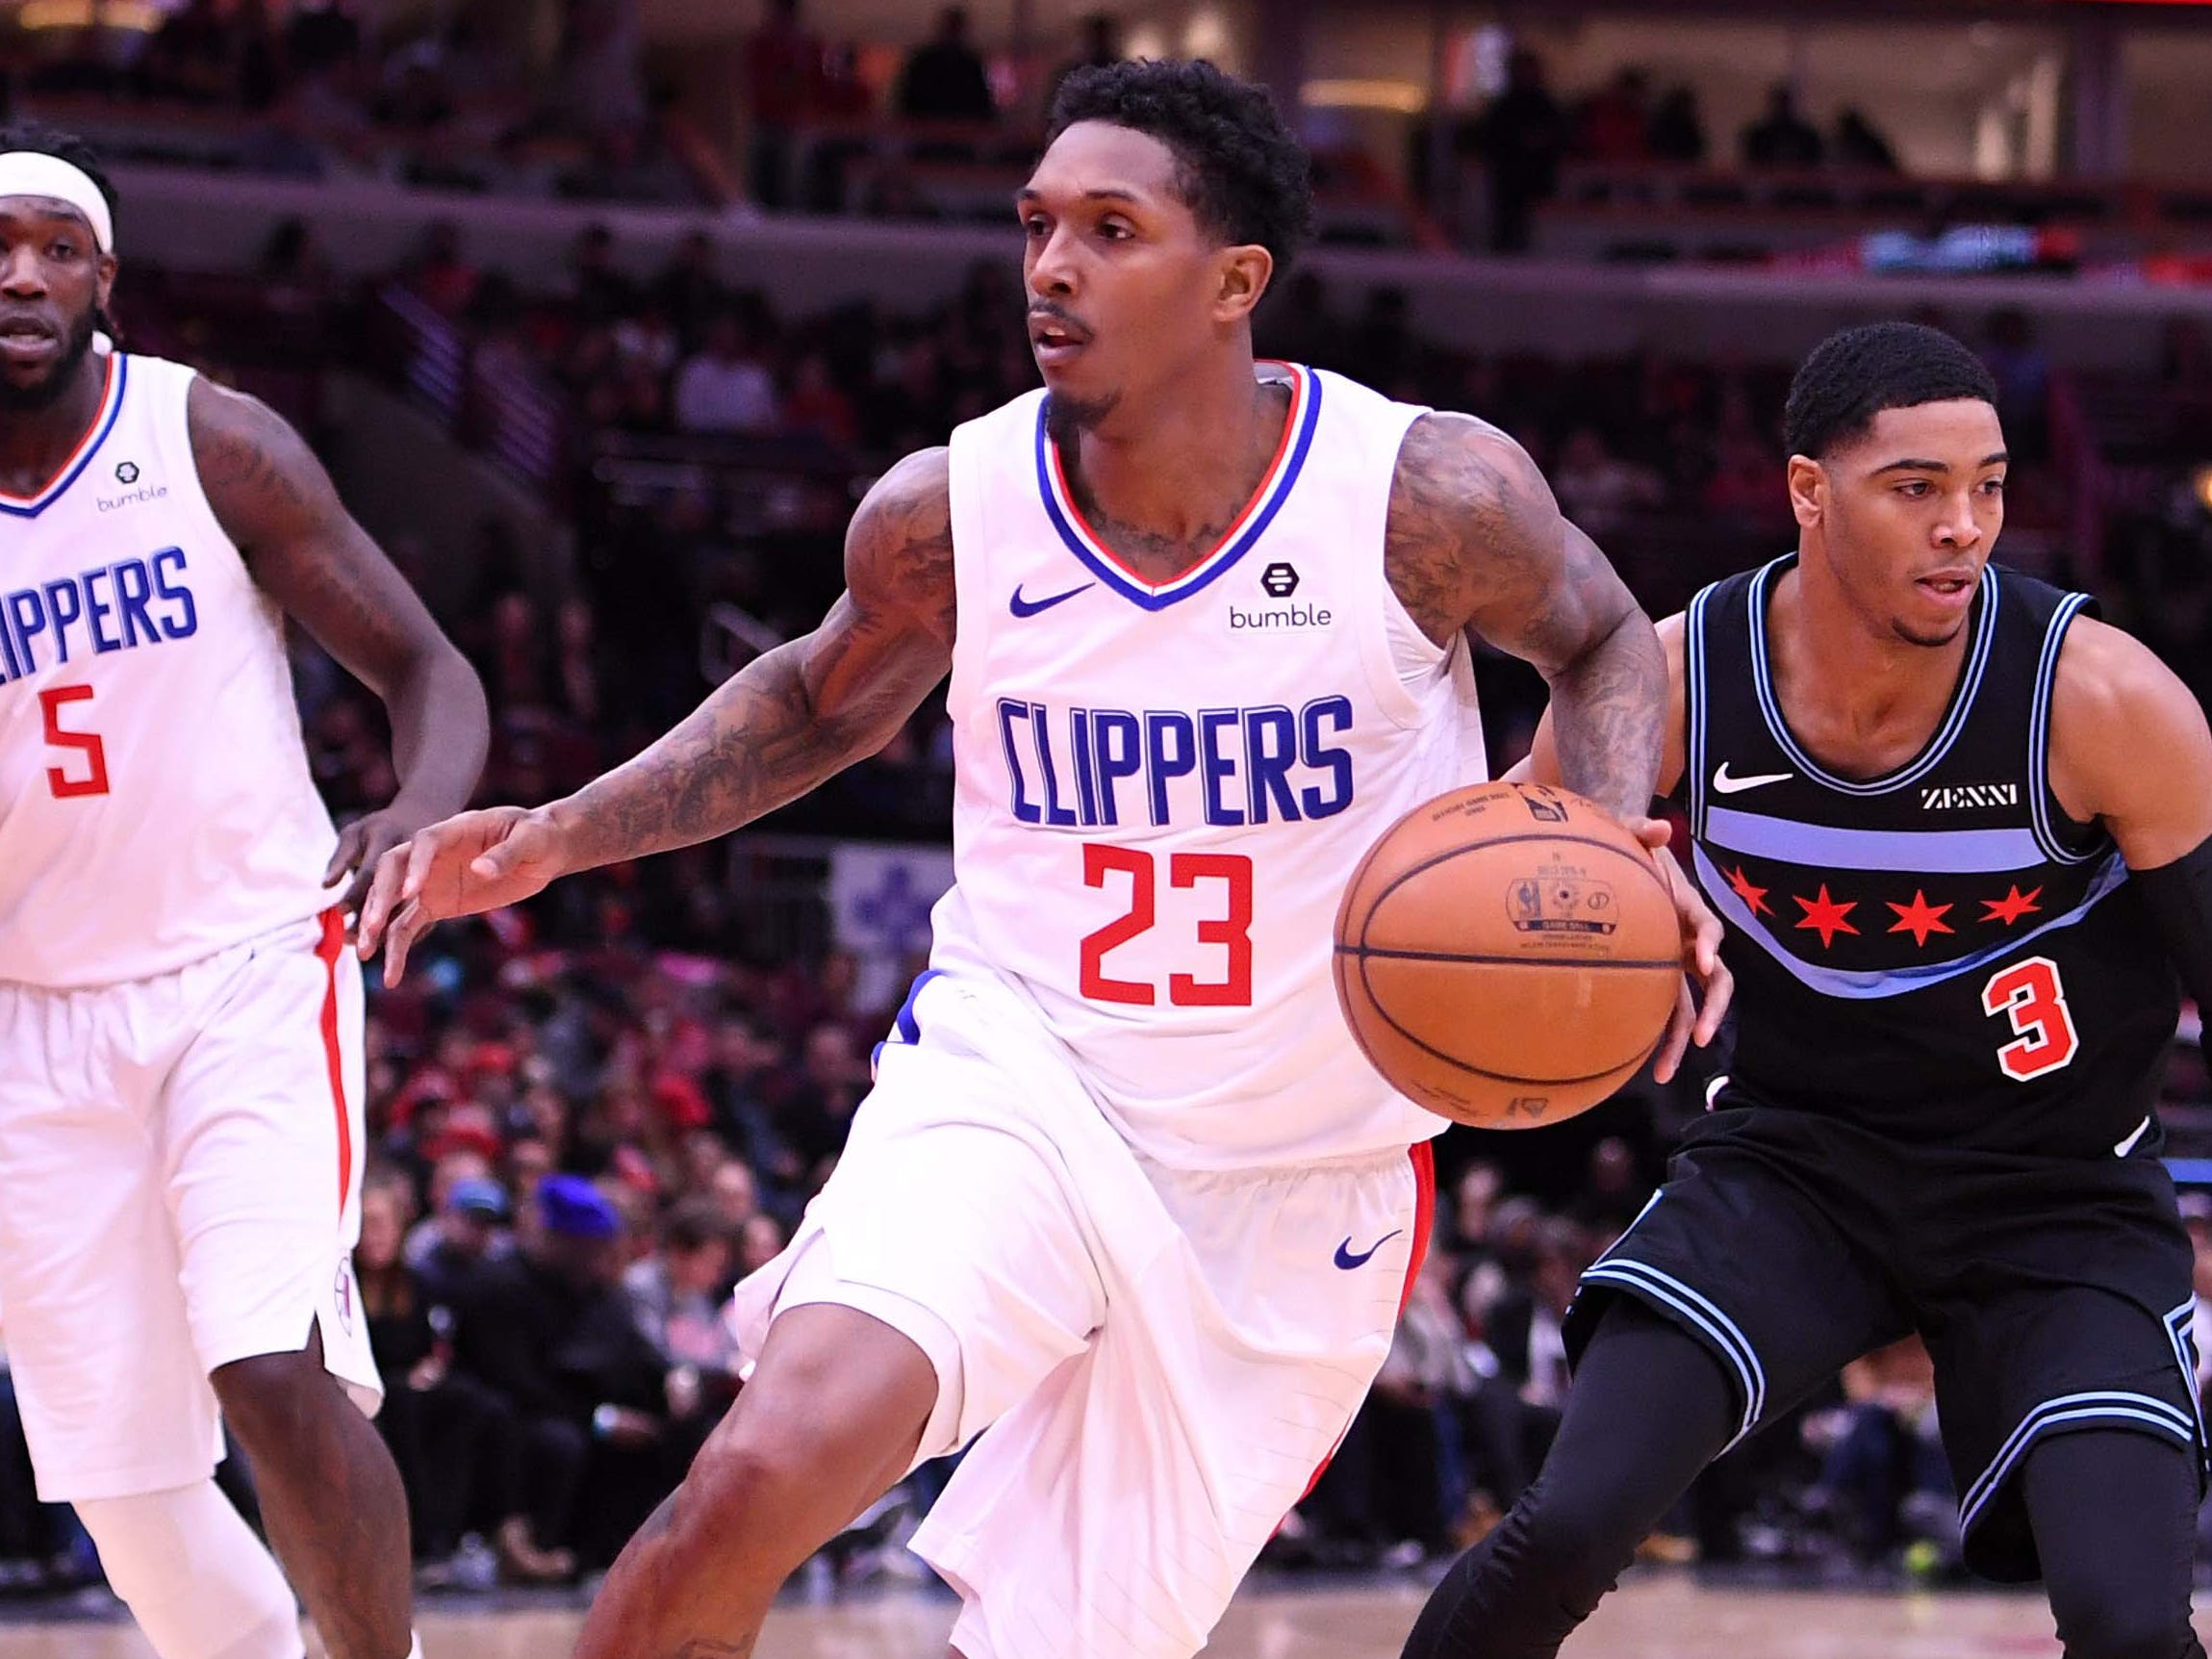 62. Lou Williams, Clippers (Jan. 25): 31 points, 10 assists, 10 rebounds in 106-101 win over Bulls.